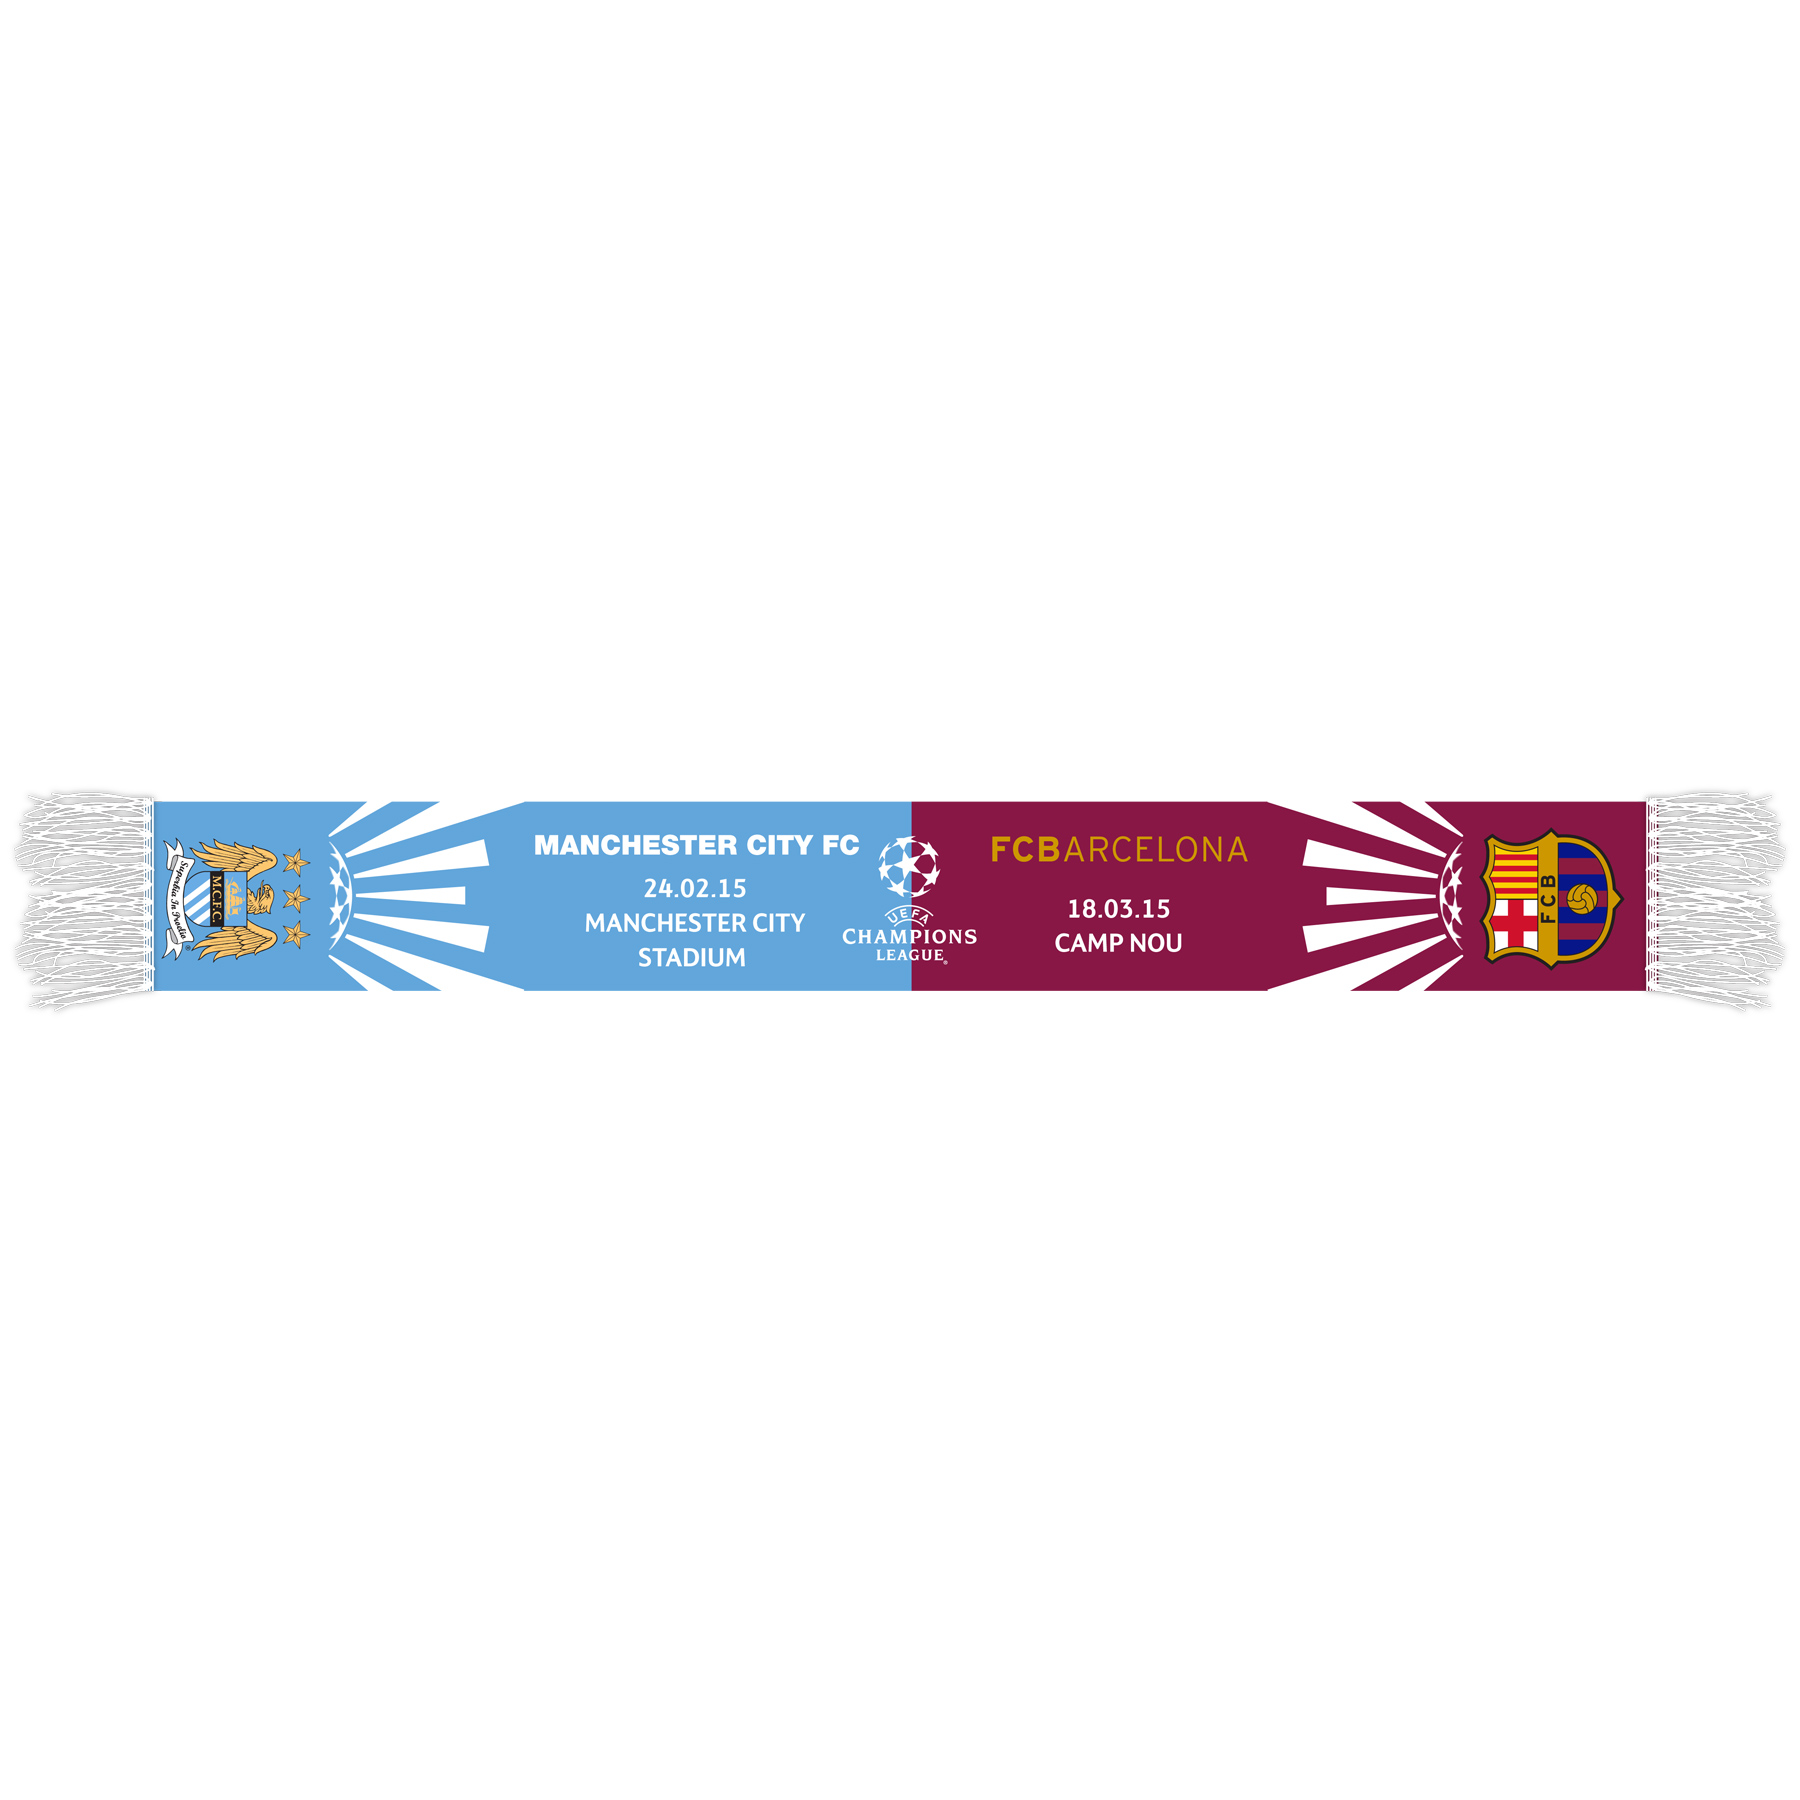 Manchester City UCL FCB Friendship Scarf - Sky/Maroon